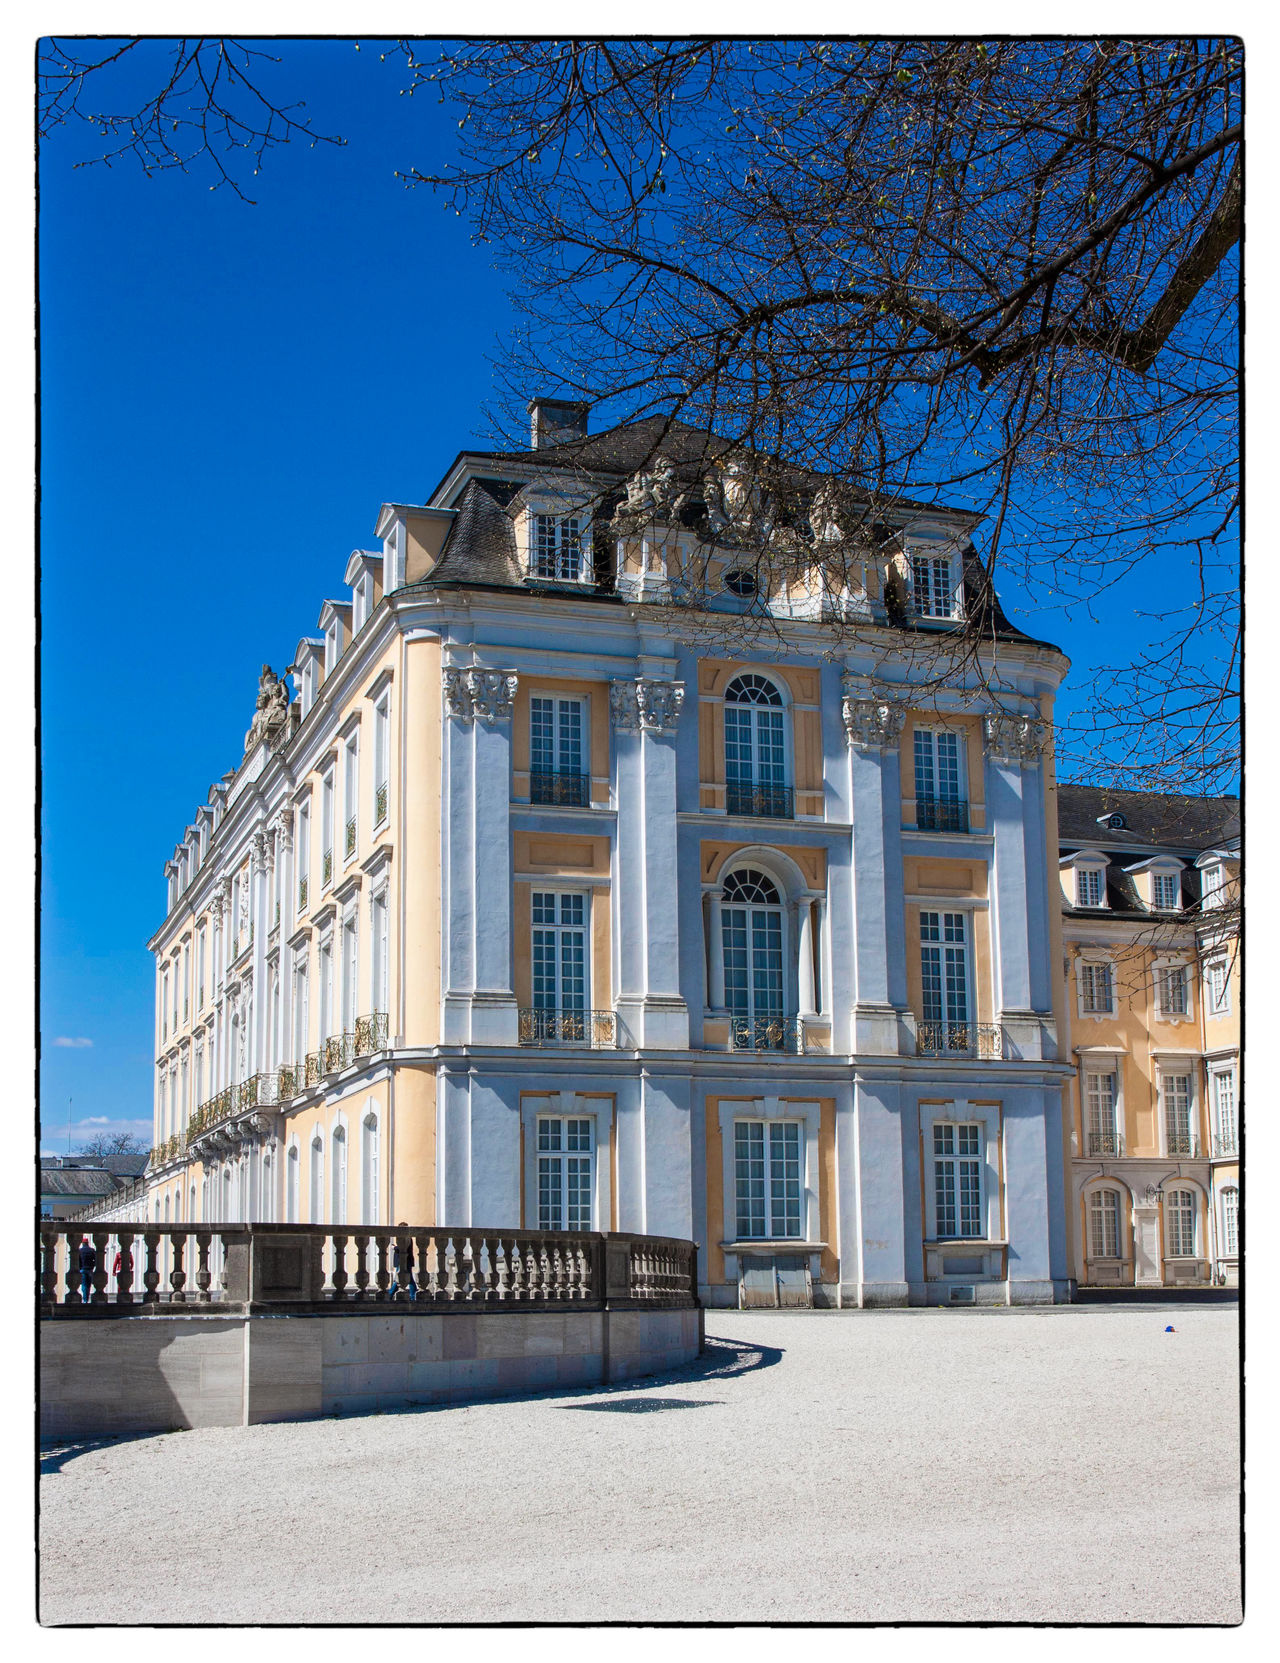 Schloss Augustusburg Architecture Bare Tree Blue Building Exterior Built Structure City Clear Sky Day No People Outdoors Sky Sunlight Travel Destinations Tree